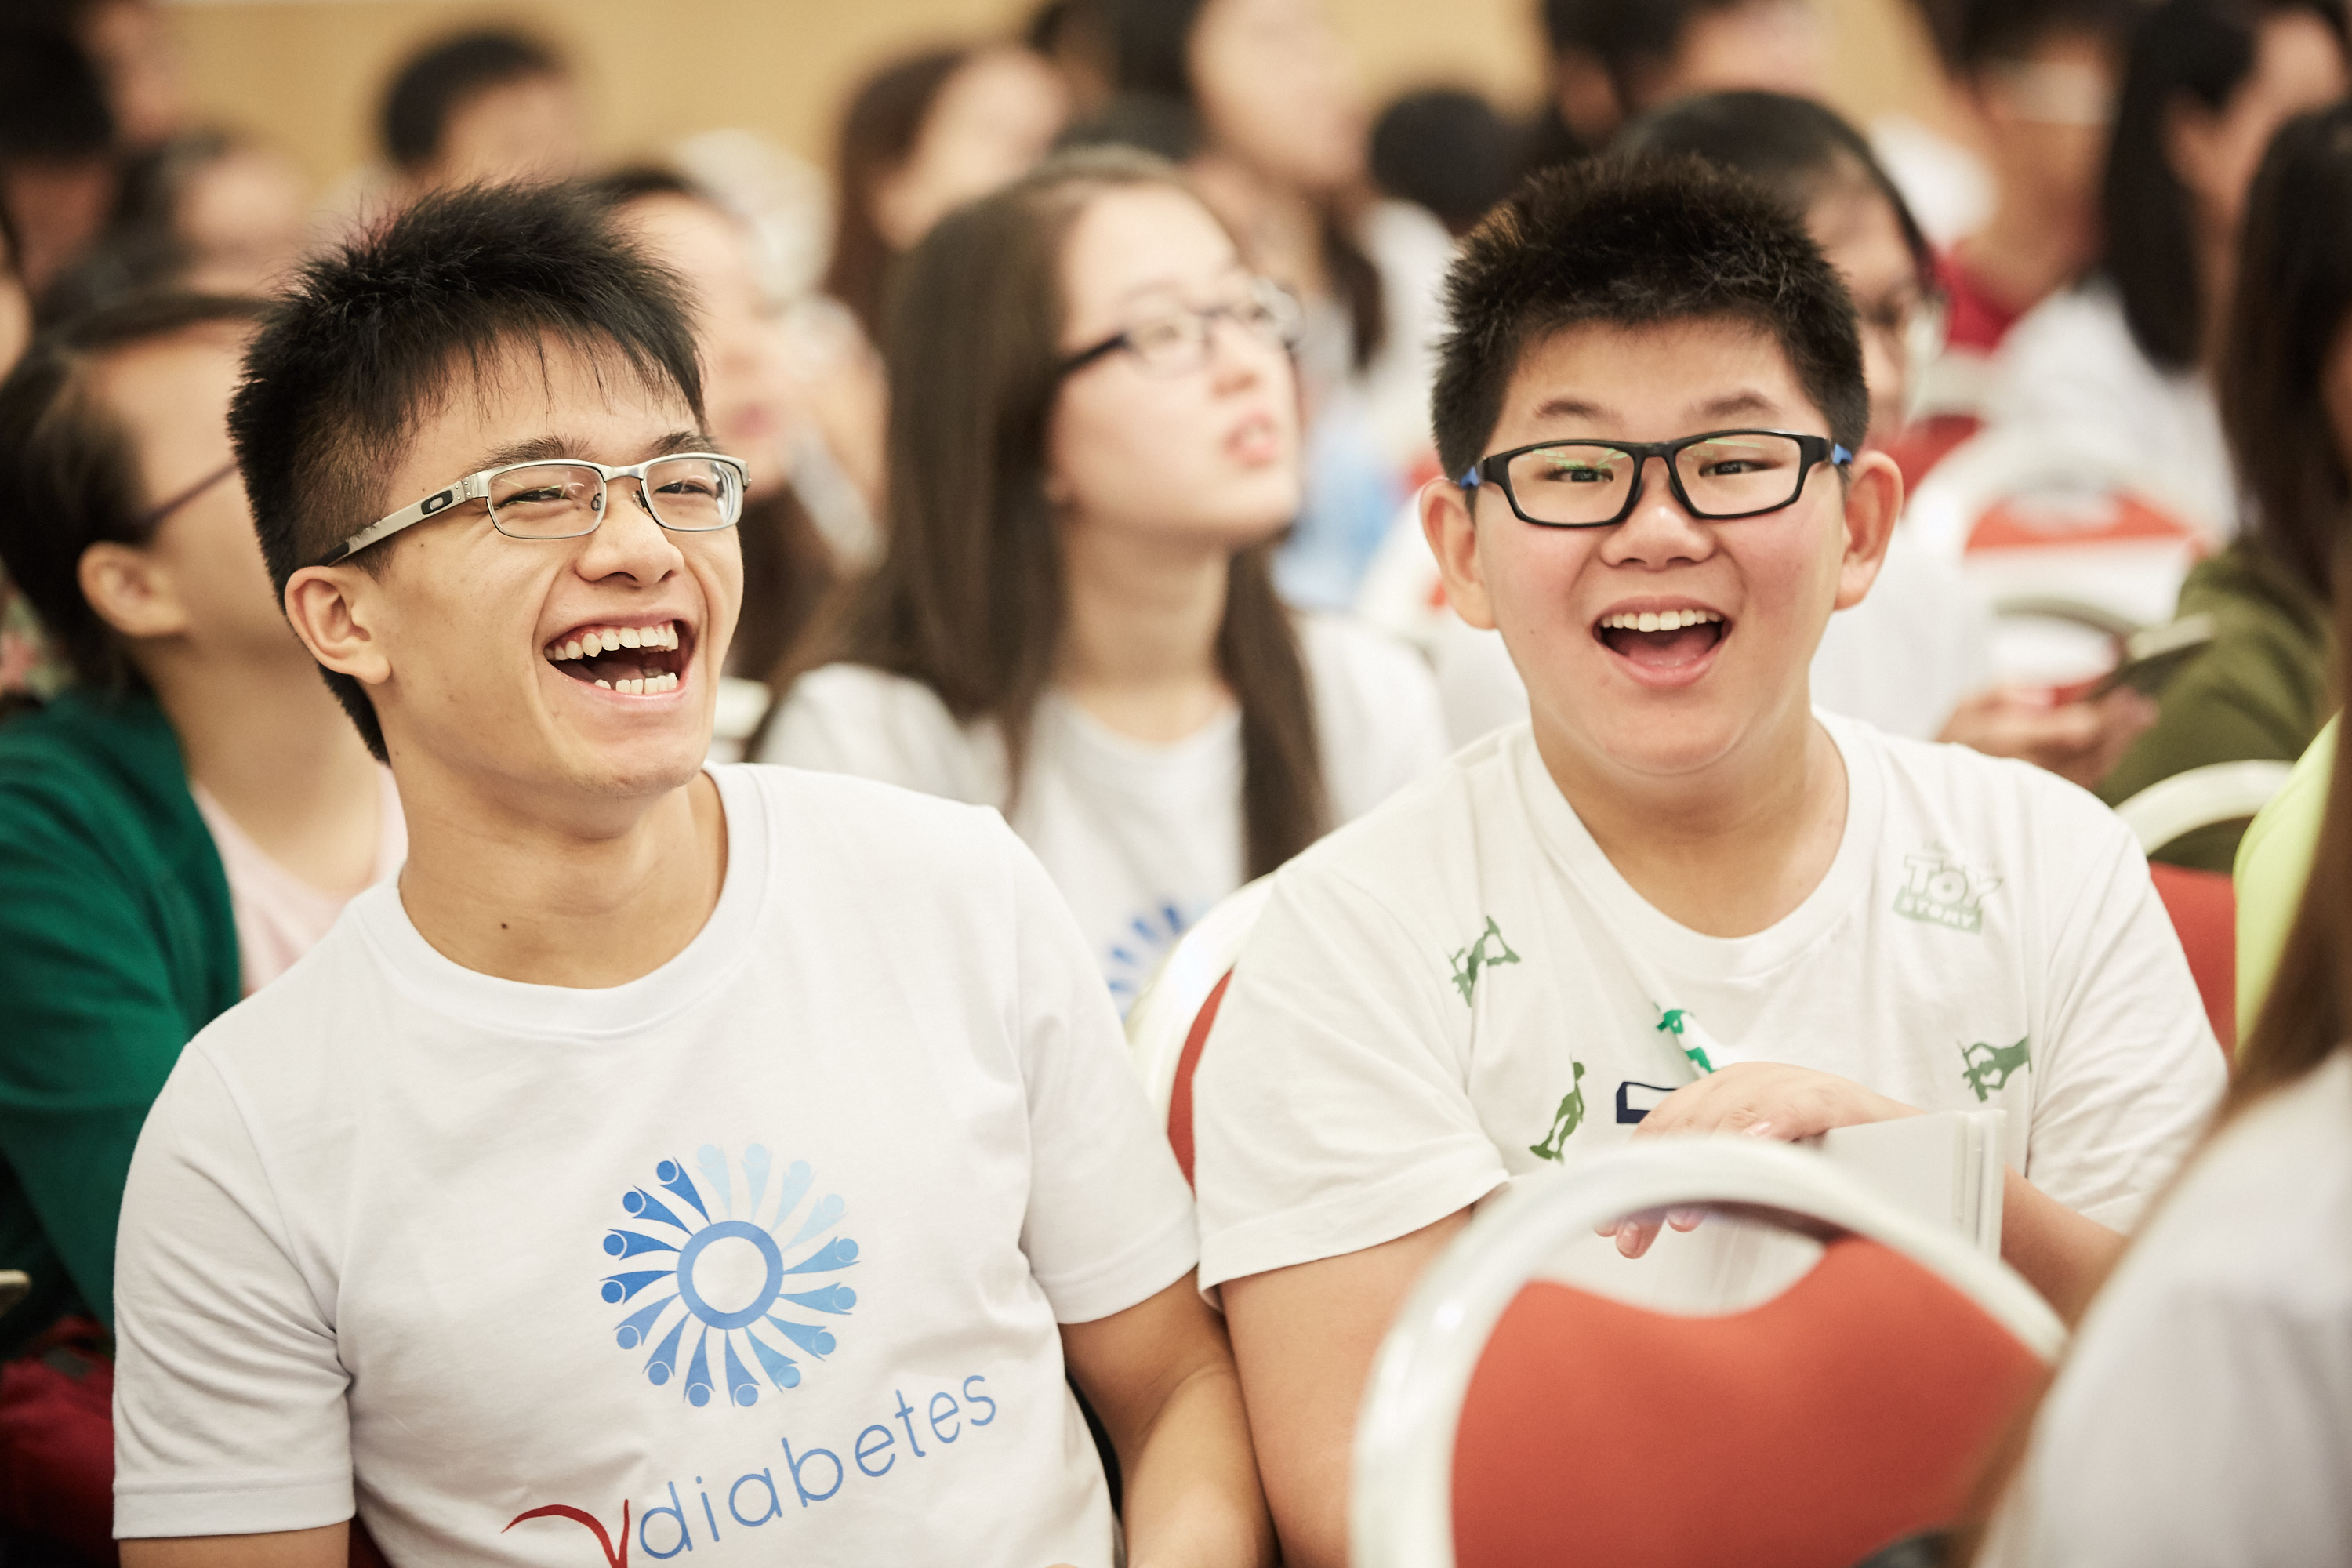 Youths at the Y Diabetes Movement, which are empowered by them, to spread greater awareness of diabetes and its impact on lives to Singaporeans.